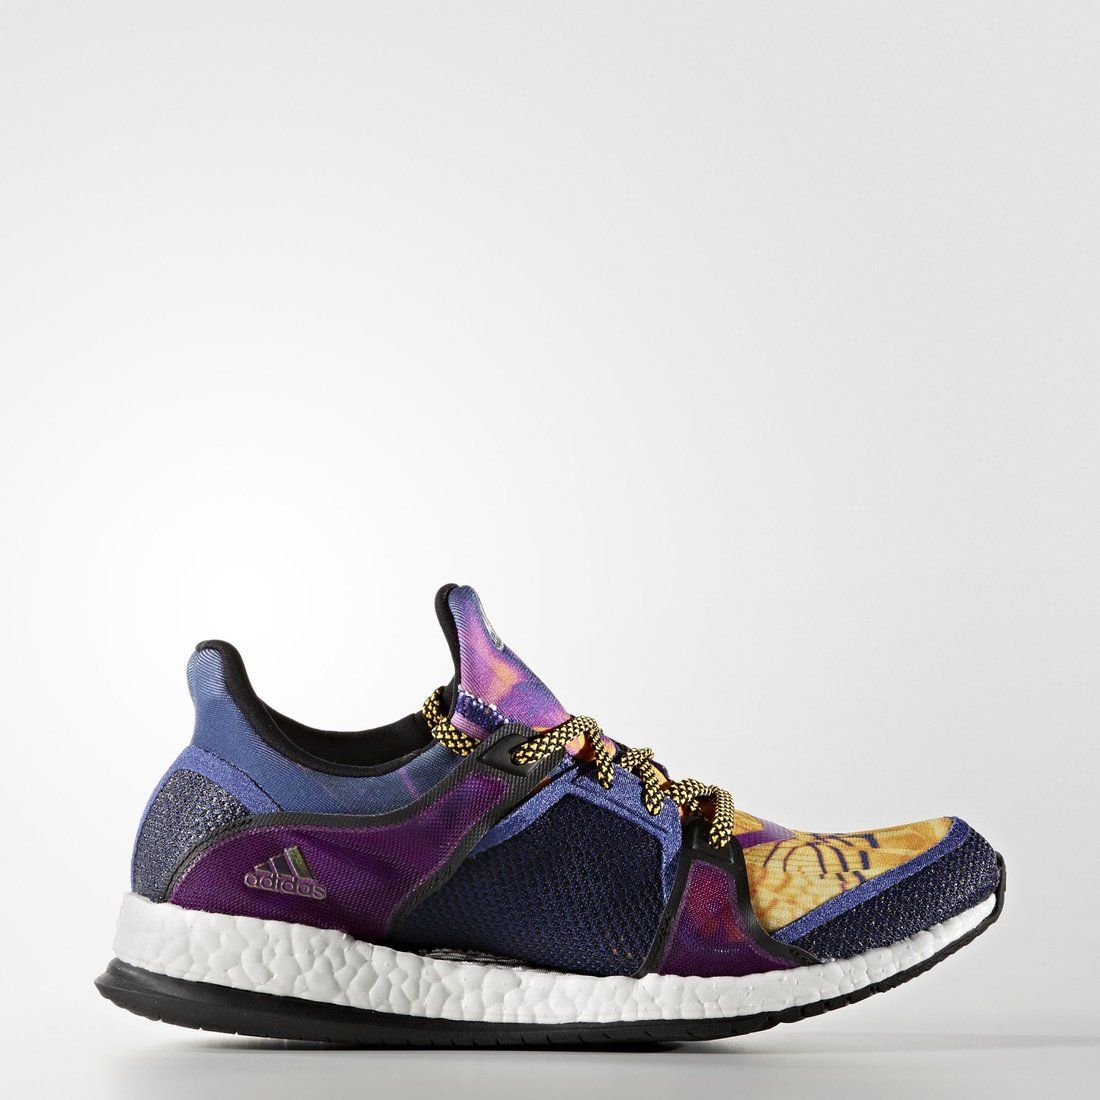 Adidas Pure Boost x Training Shoes   62,96 GBP  